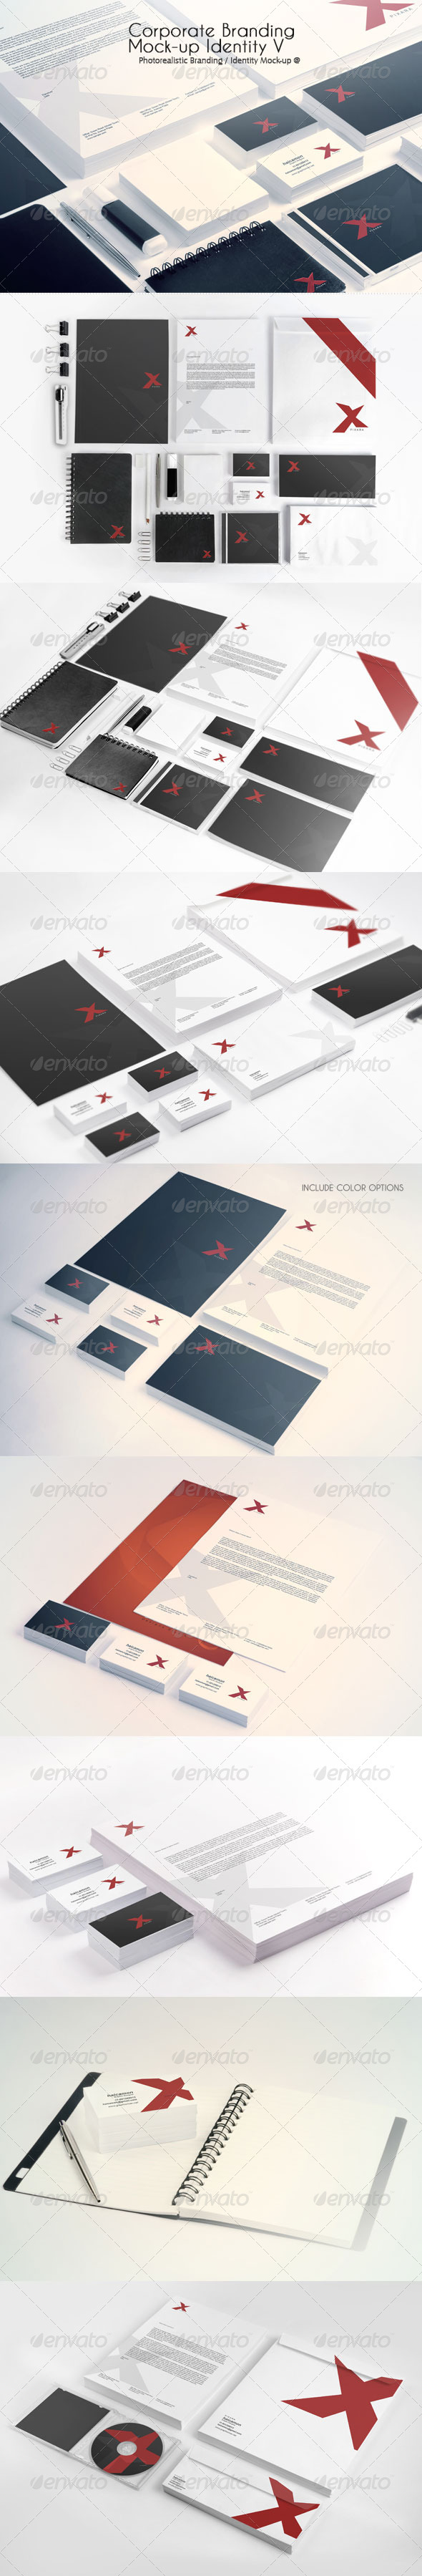 Corporate Branding Mock-up Identity V - Product Mock-Ups Graphics